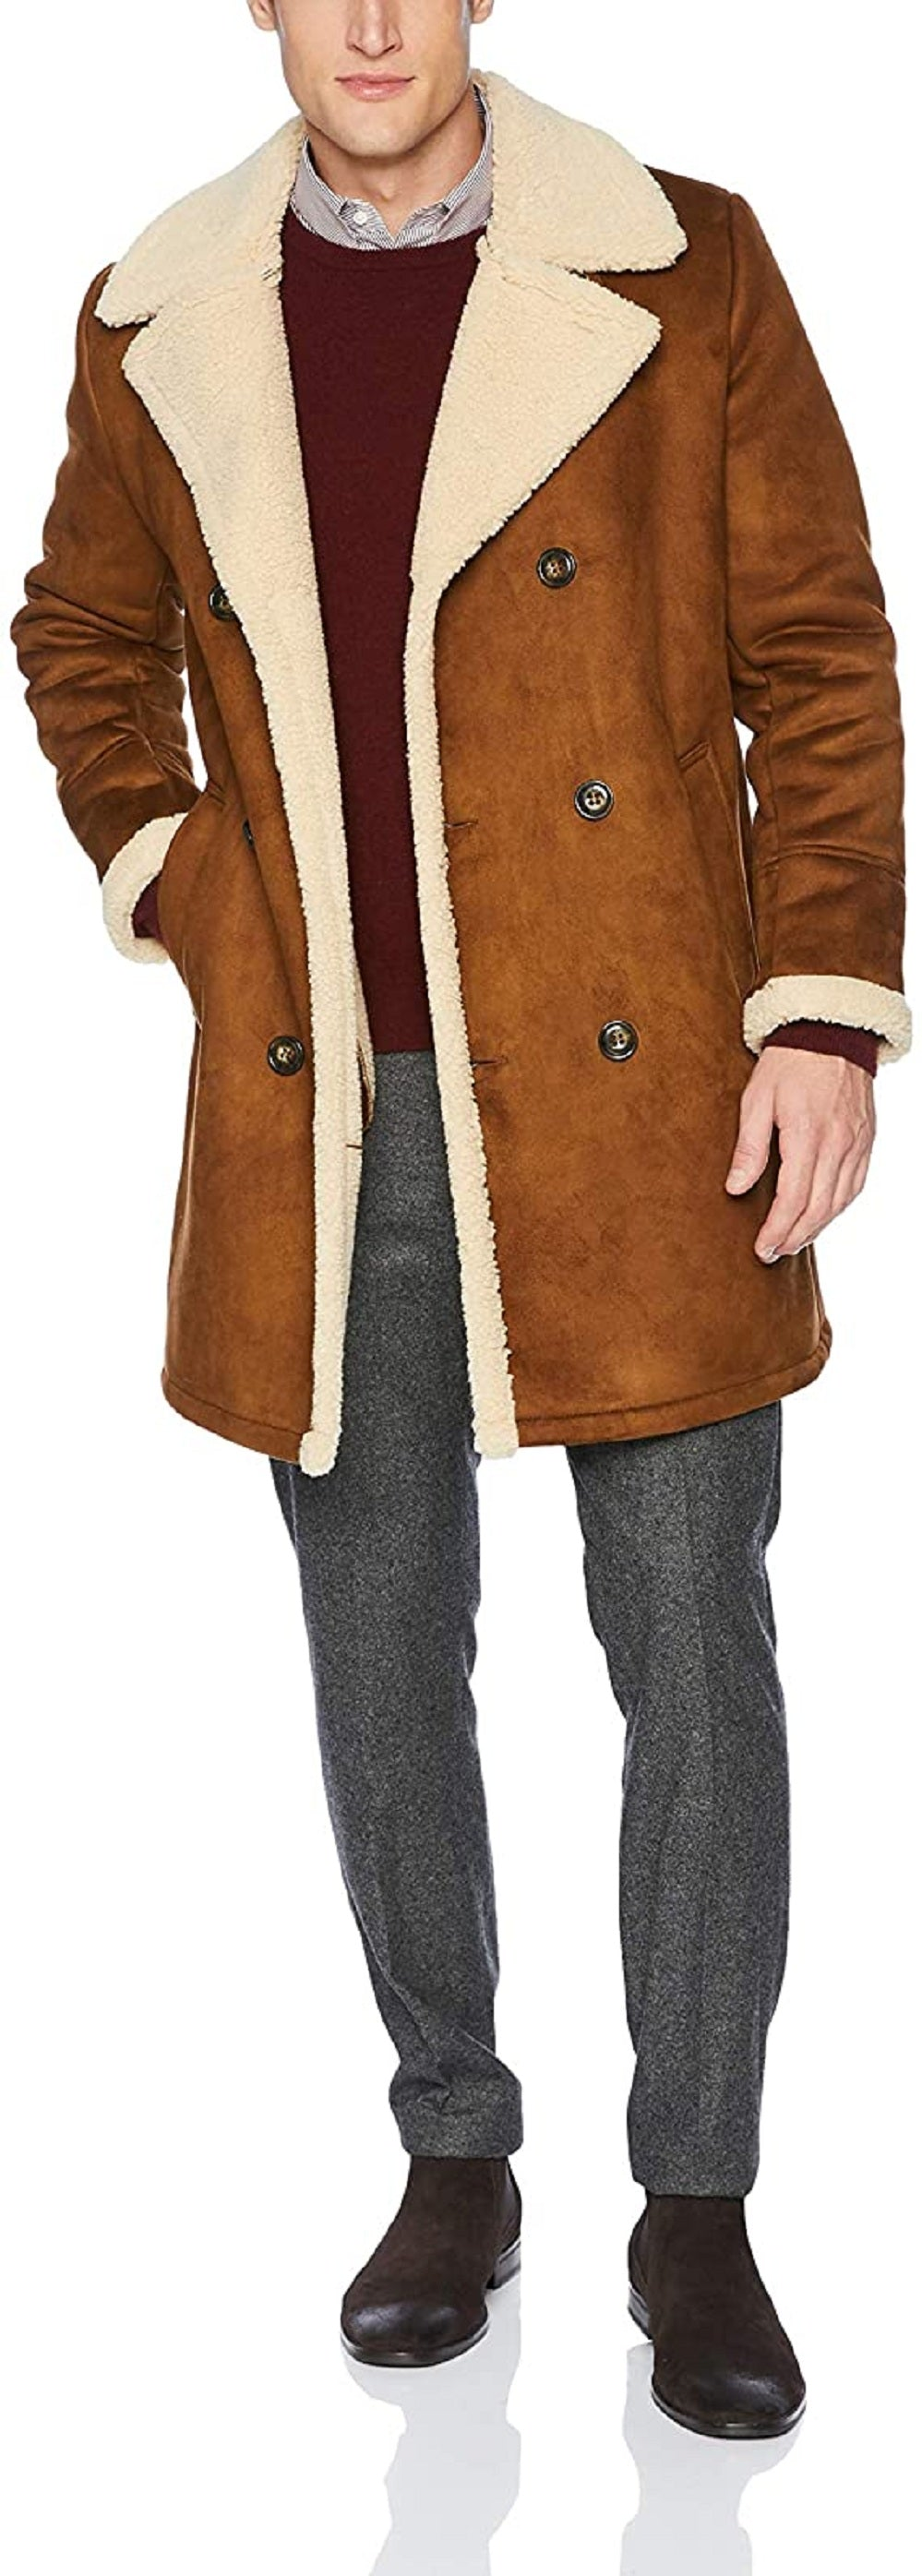 Men's Double Breast Shearling Jacket